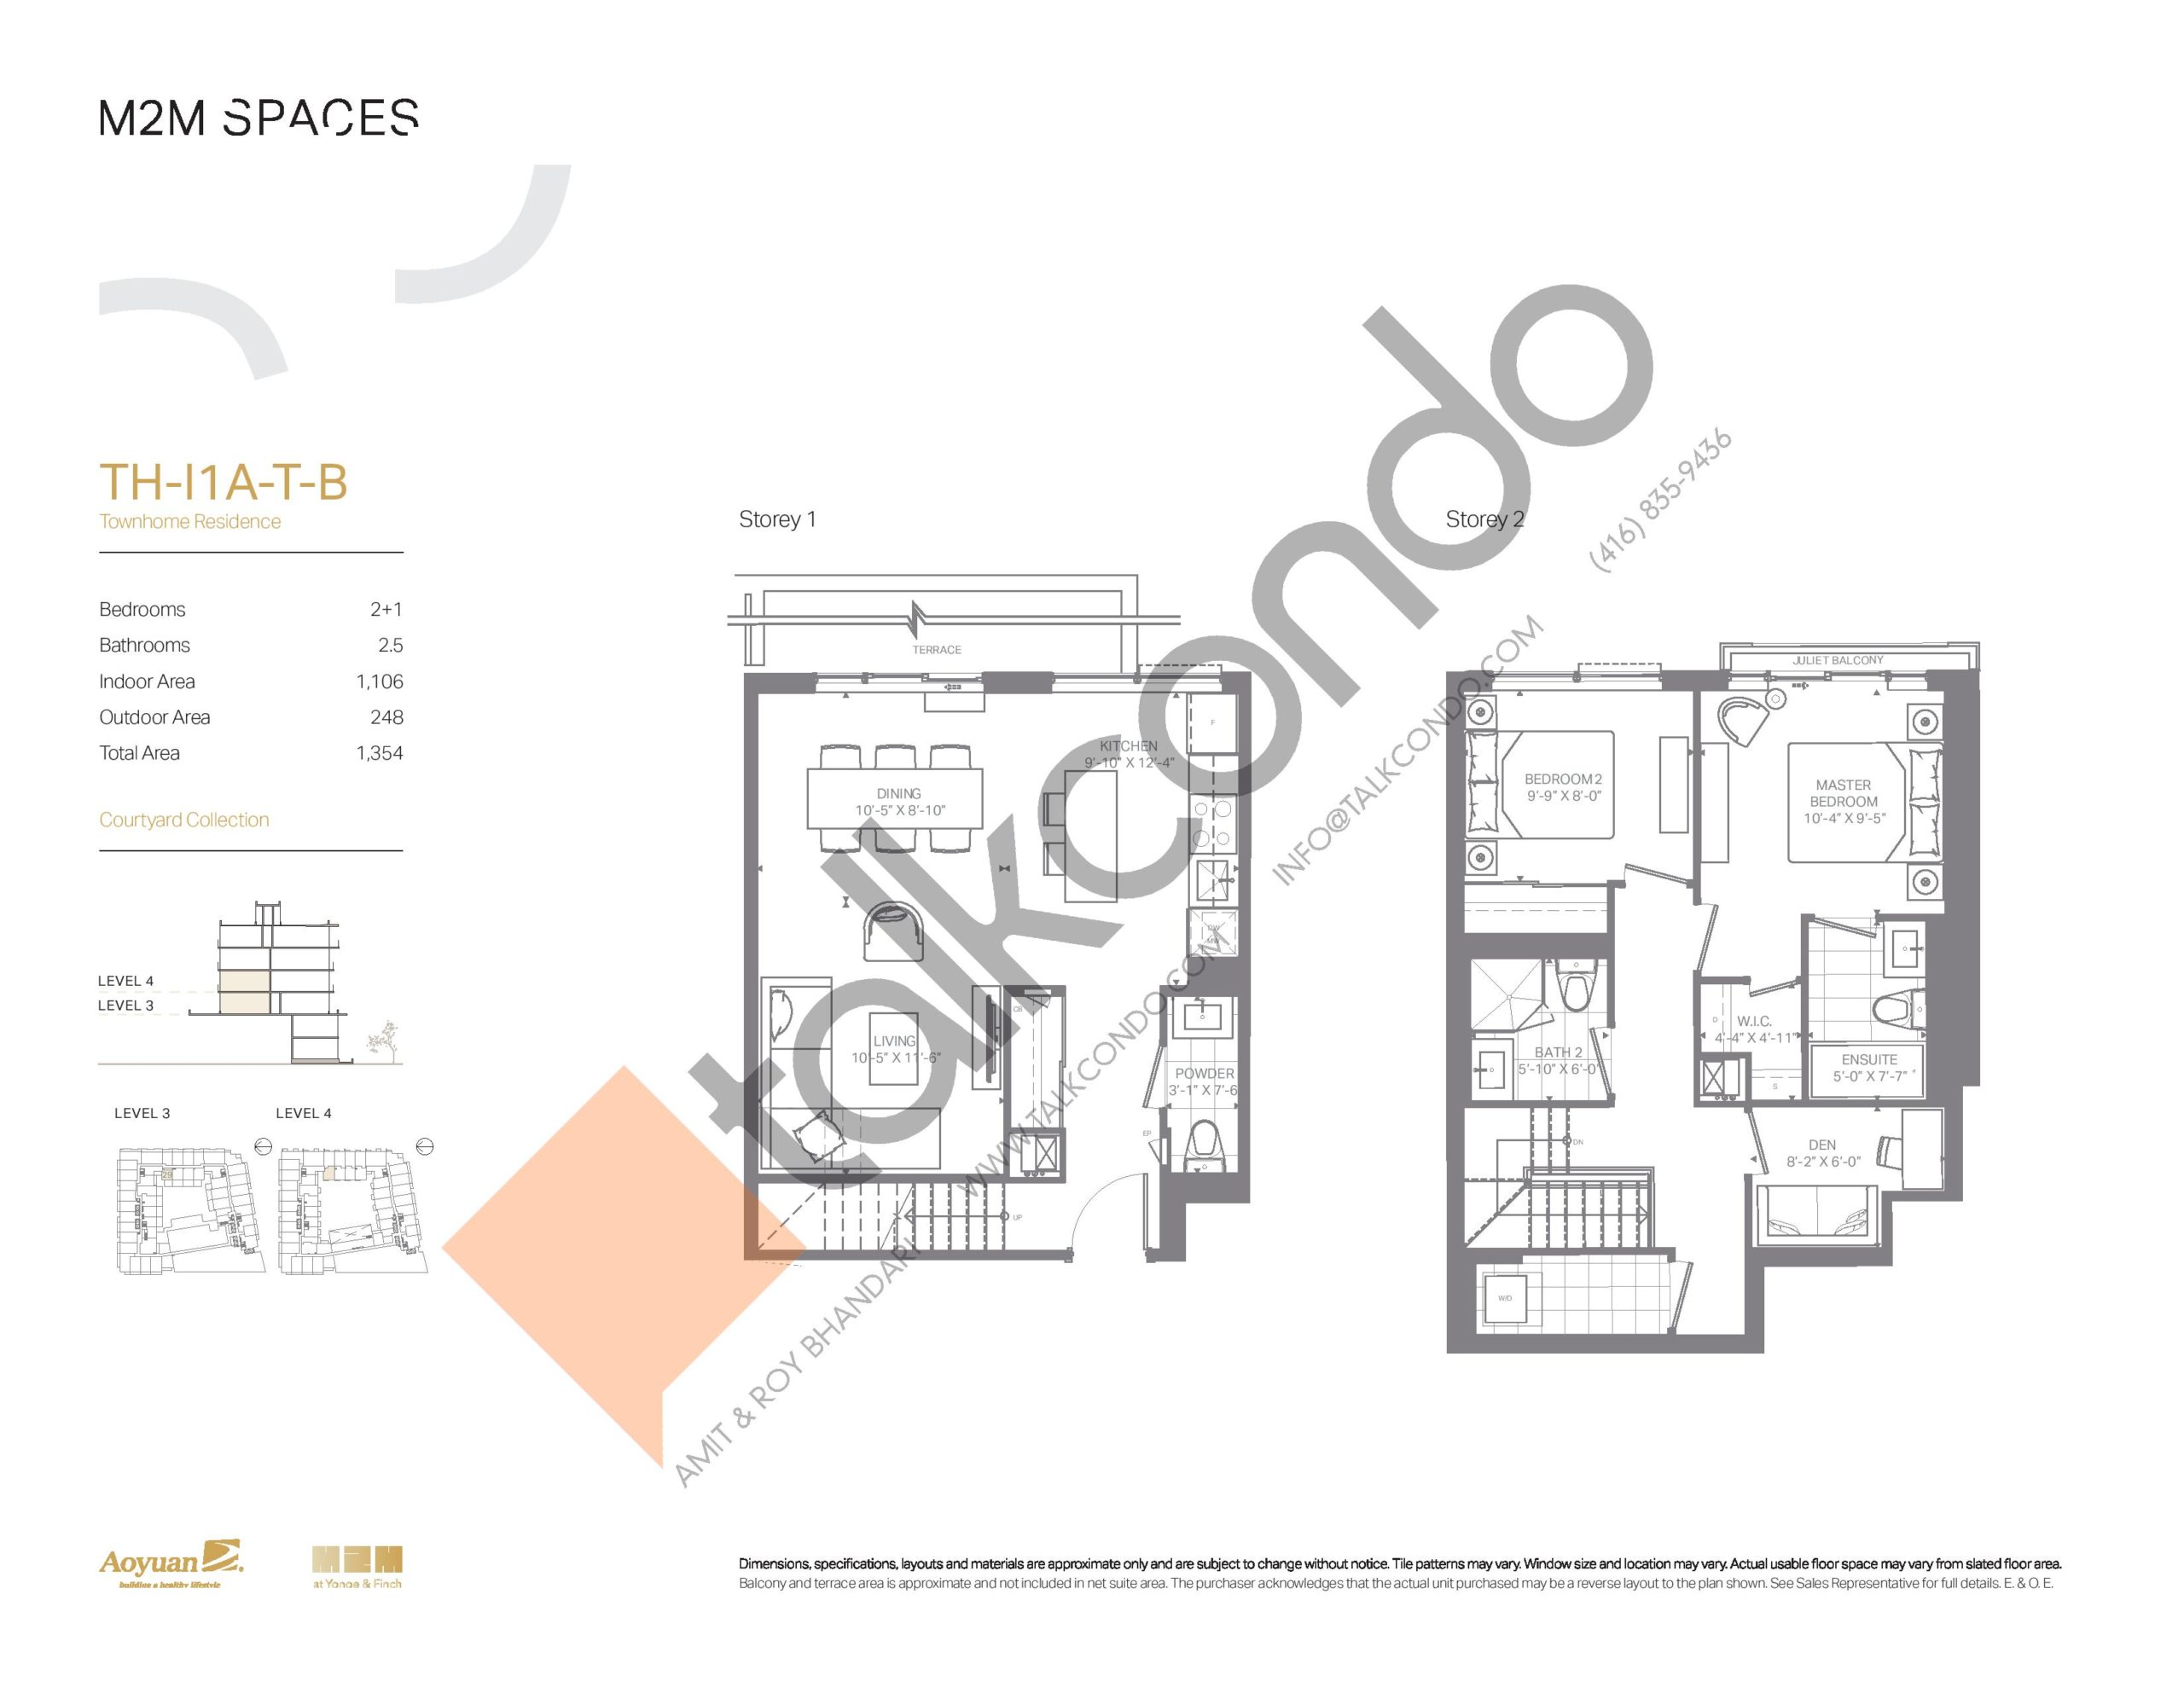 TH-I1A-T-B (Courtyard Collection) Floor Plan at M2M Spaces Condos - 1106 sq.ft